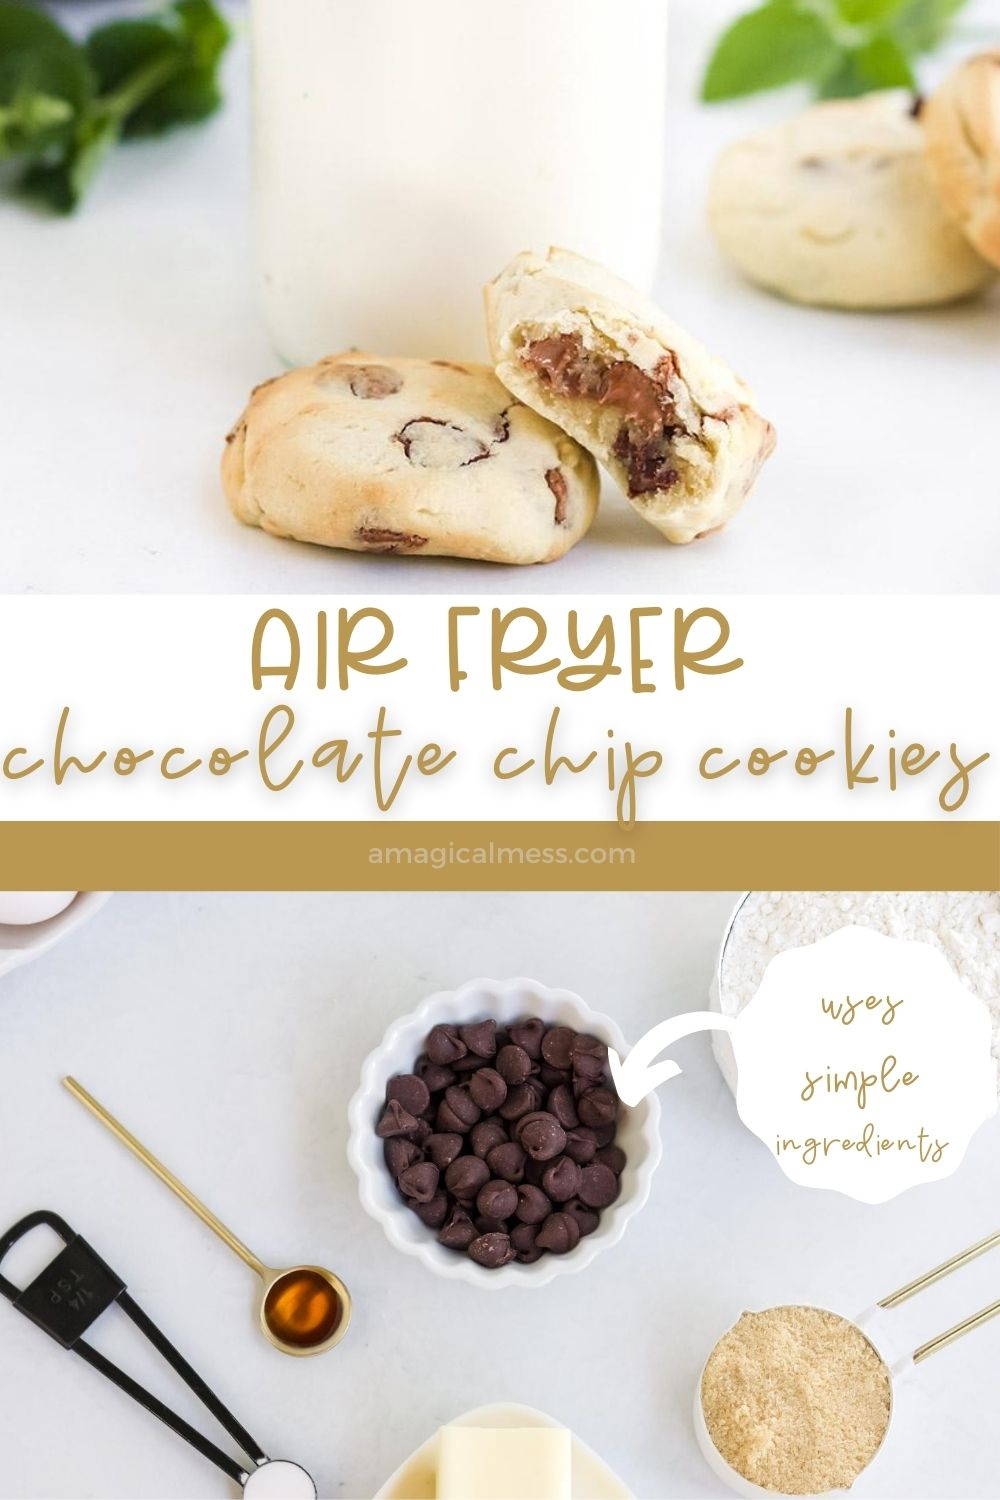 Cookies in front of air fryer and shot of ingredients